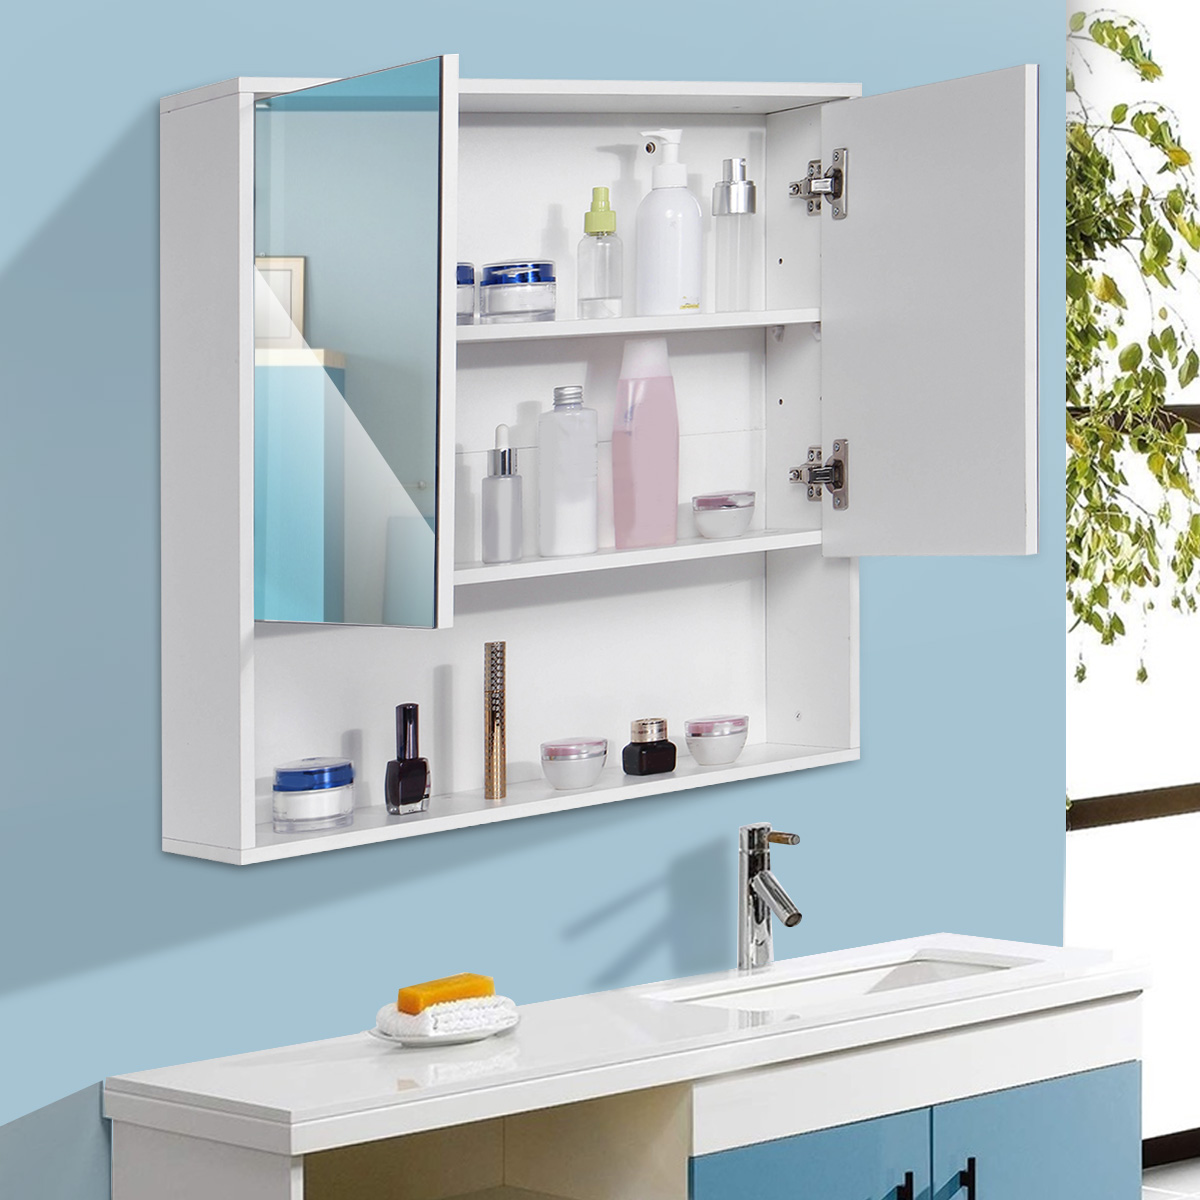 Bathroom Cabinet 60x60cm Wall Mounted Bathroom Mirror CabinetsToilet Furniture  Cupboard Shelf Storager Modern Style UK Stock